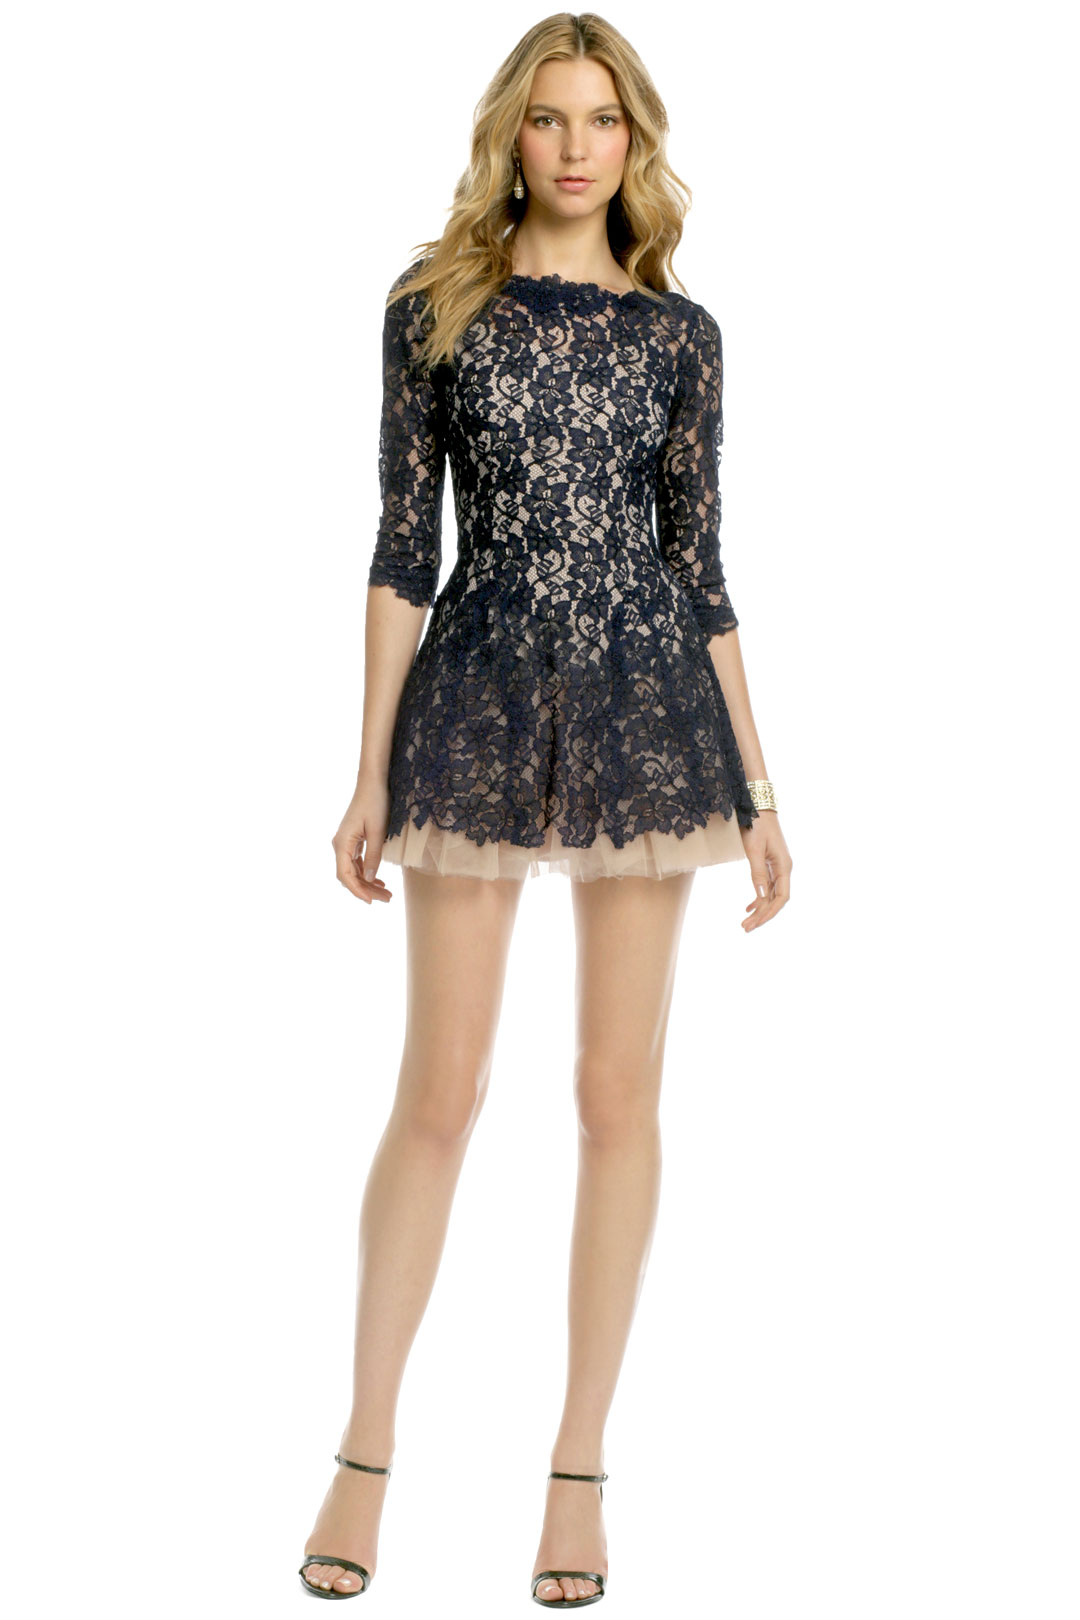 68474bb485 Sweet Talk Dress by nha khanh at $44.99 | Rent The Runway